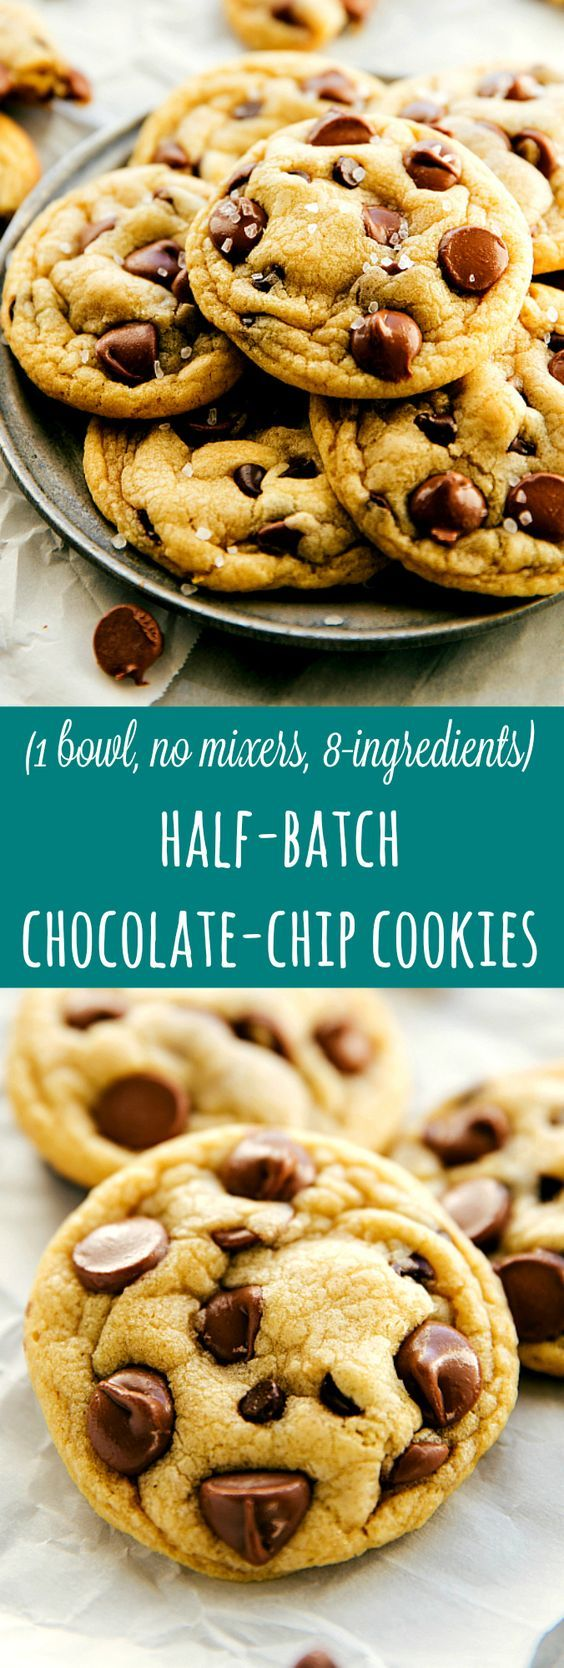 Easiest Half-Batch Chocolate Chip Cookies (One Bowl, No Mixer Required) | Chelsea's Messy Apron Commenter said, Well this recipe is amazing! Perfect cookies, the best ones I've ever made.""